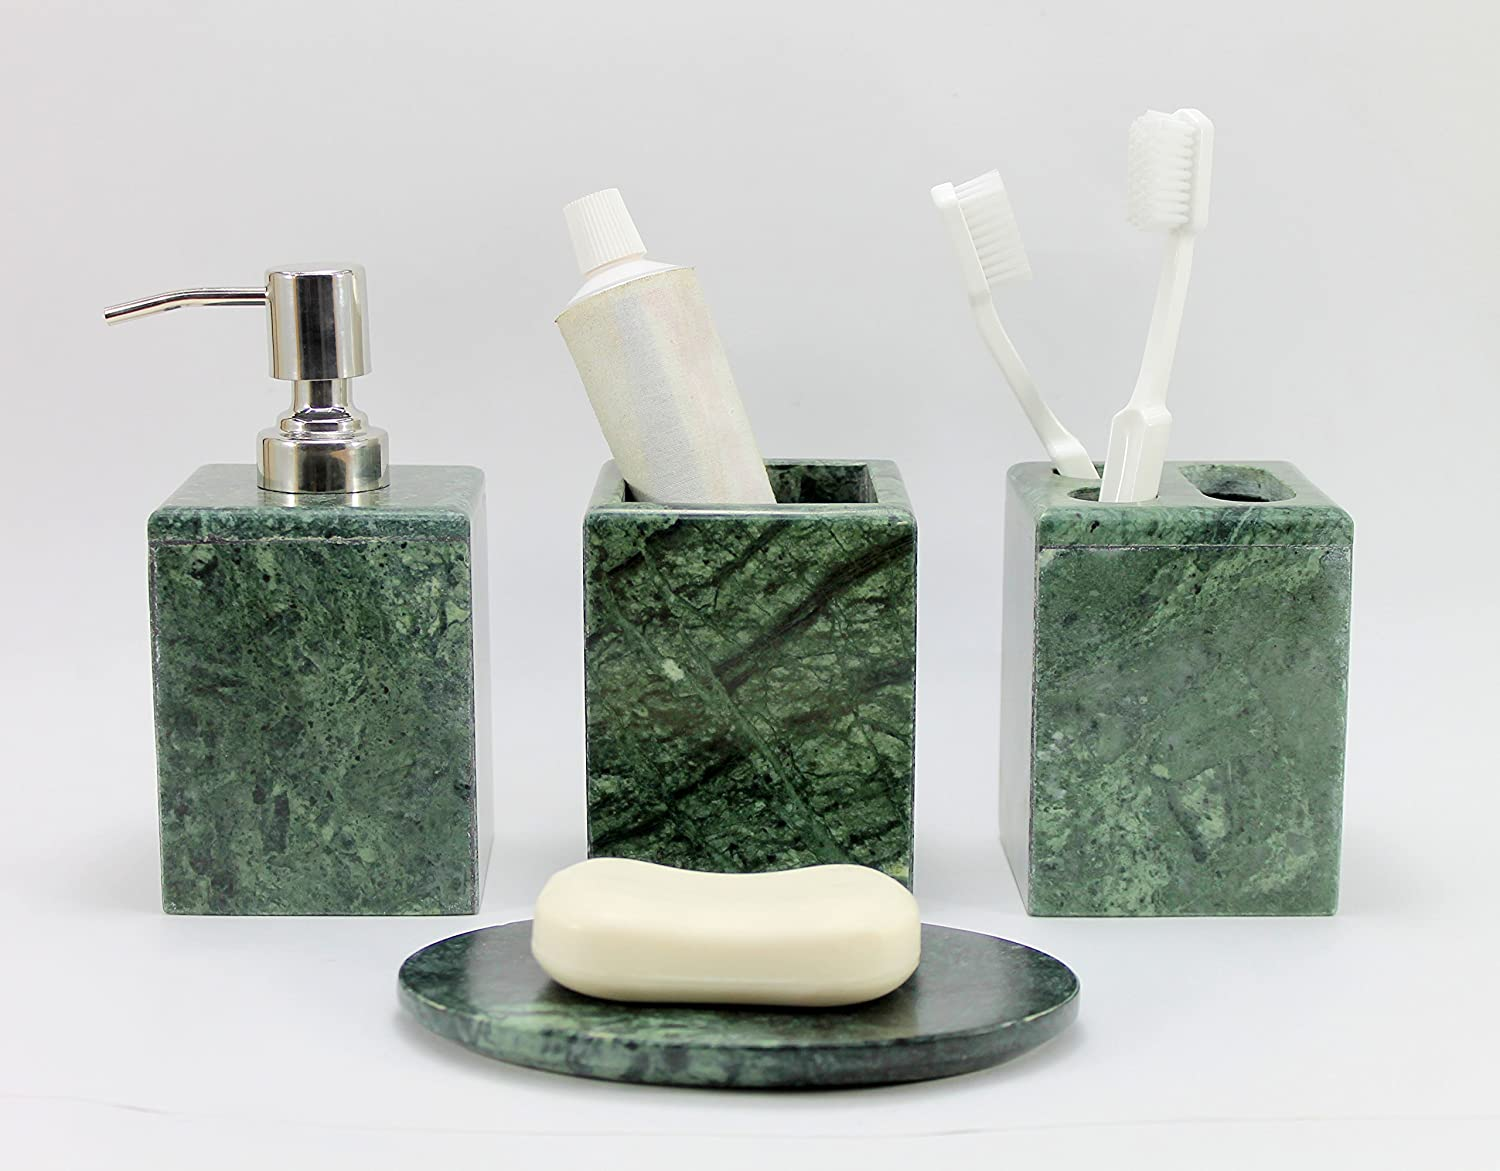 Utility and Soap Dish BathAcceSet KLEO Bath Accessories Set of 4 Includes Soap Dispenser Toothbrush Holder Bathroom Accessory Set Made from Natural Brown//Sand Stone